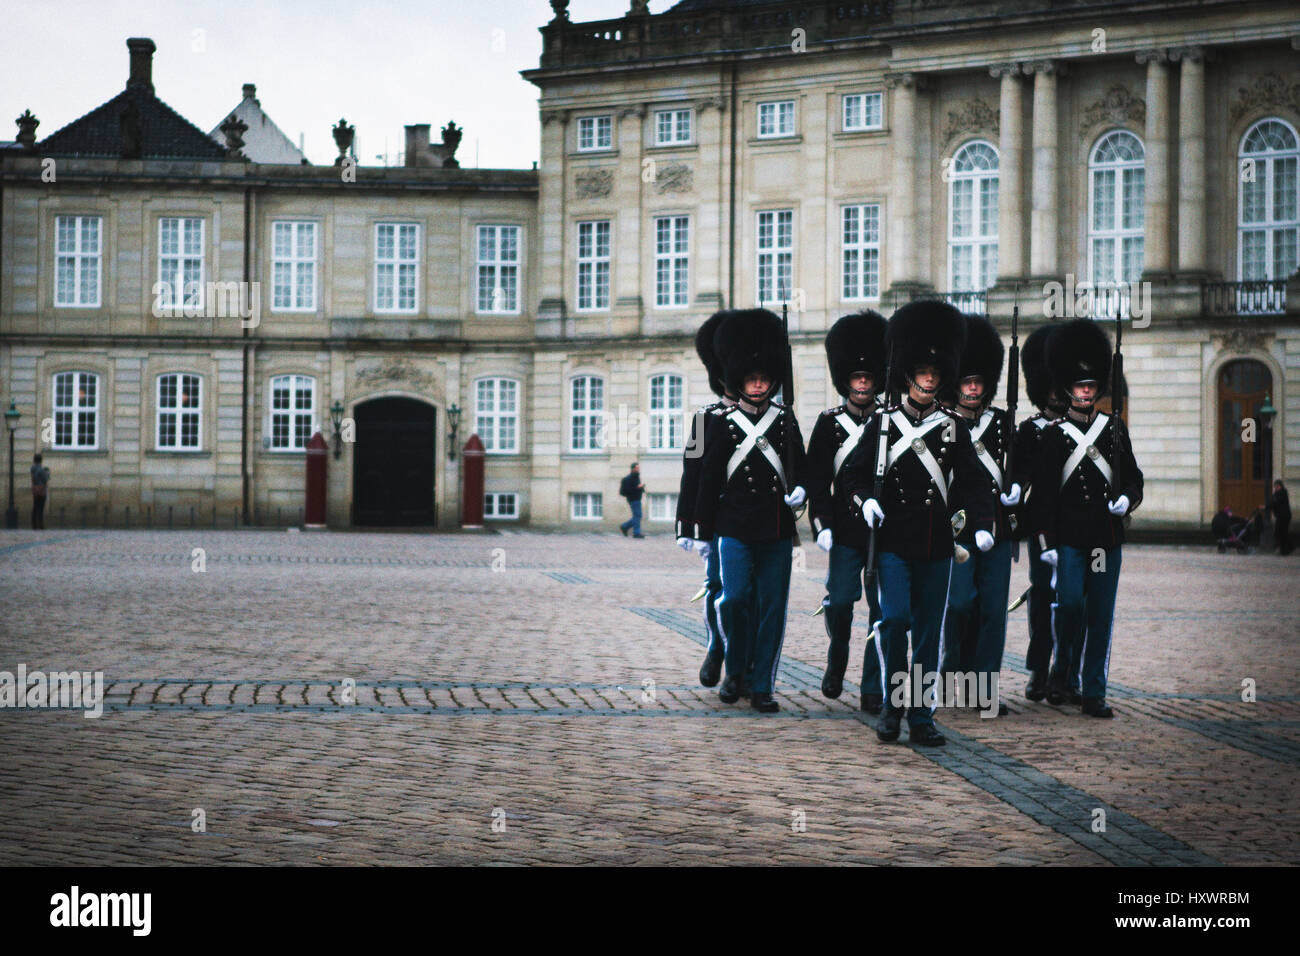 Changing the Guard ceremony at Amalienborg in Copenhagen, Denmark. Their uniform is similar to the Foot Guards of - Stock Image